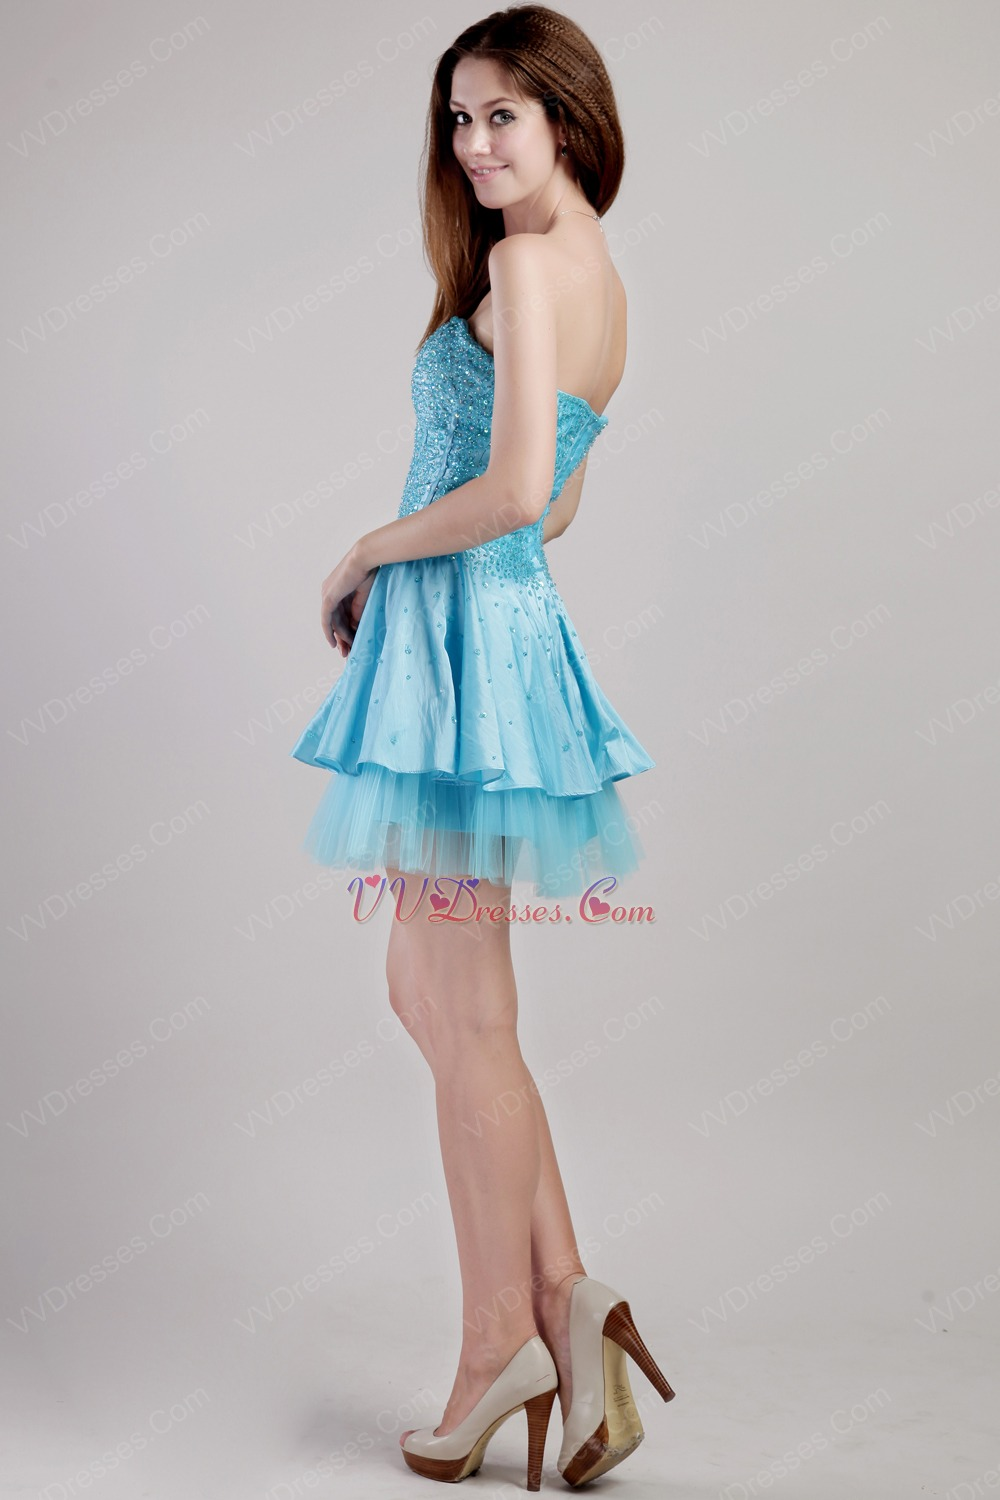 Aqua Blue Sweetheart Mini Sequined Cocktail Party Dress